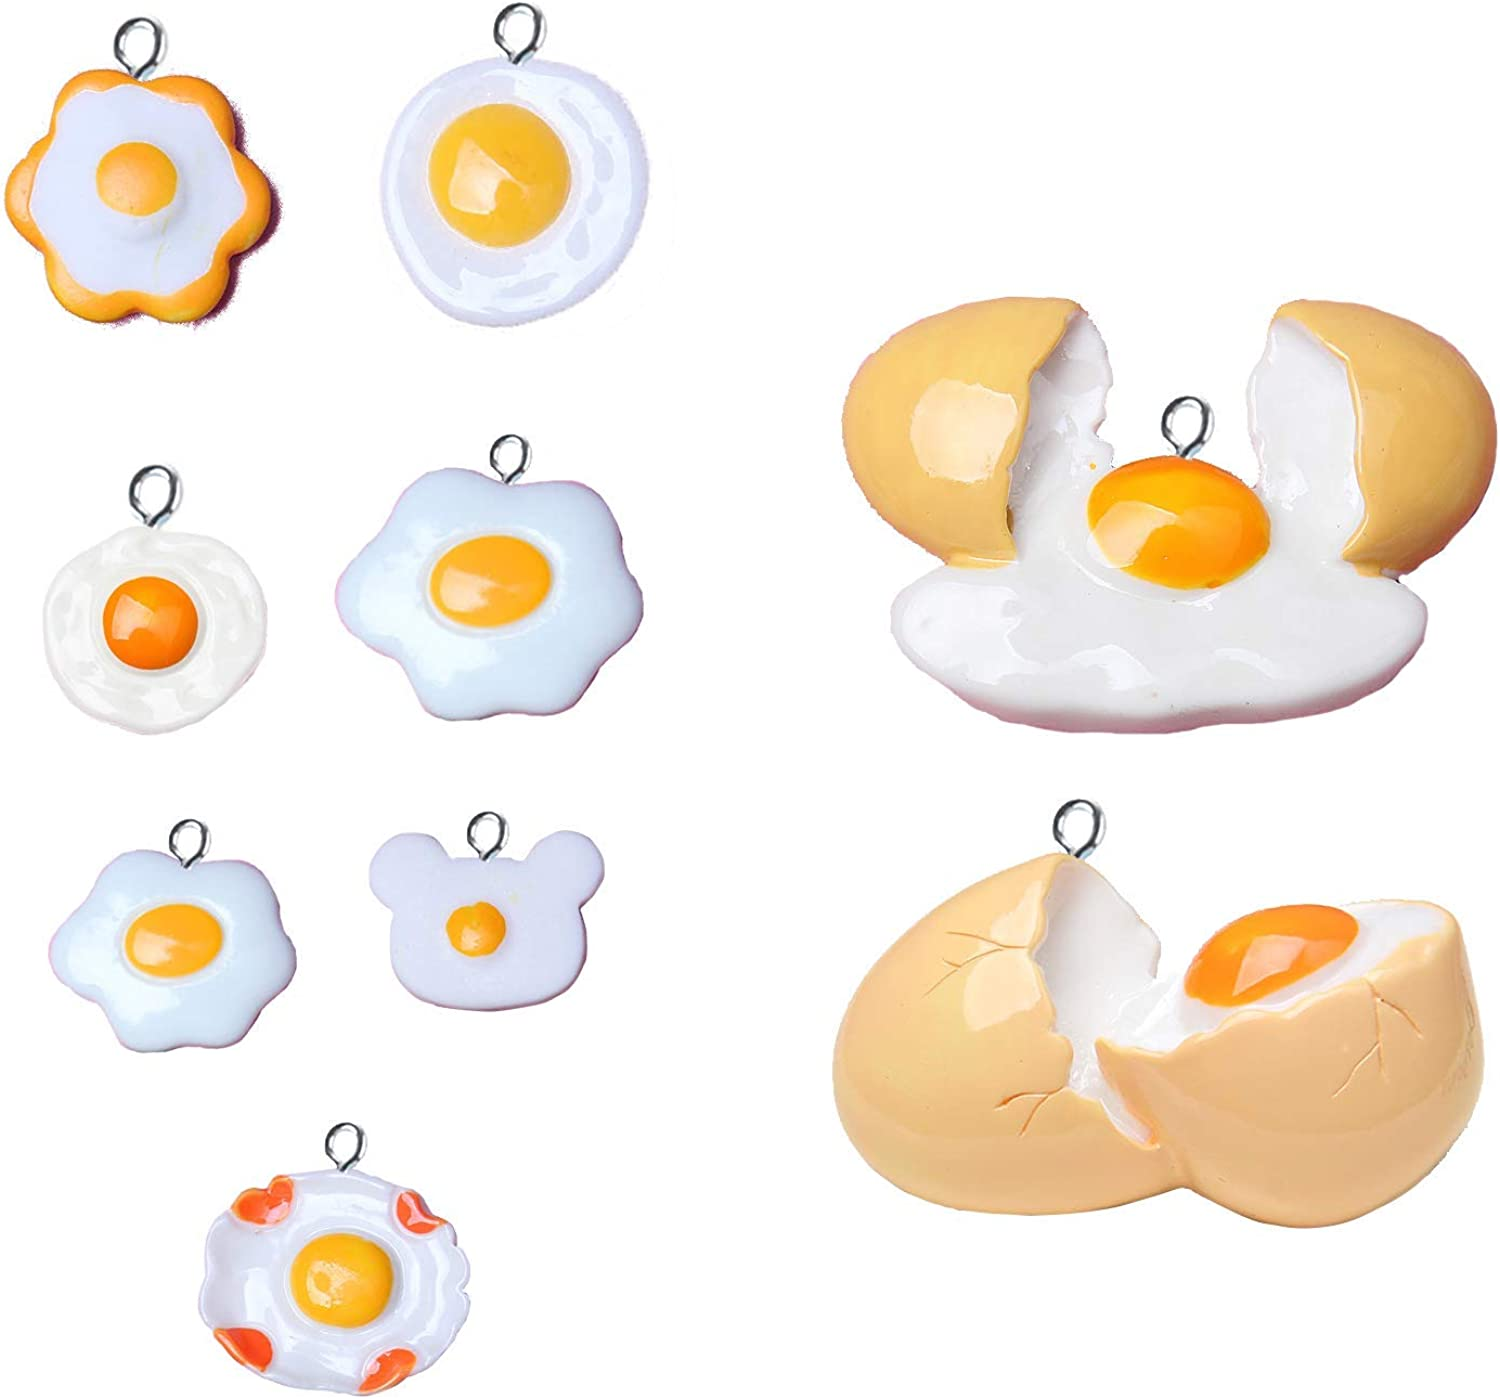 Cute Fried Egg Pendant Funny Poached Egg Pendant White Alloy Poached Egg White Yellow Enamel Charms Pendants Drop Dangle Earrings Necklace Jewelry Trendy Accessories DIY for Women Girls